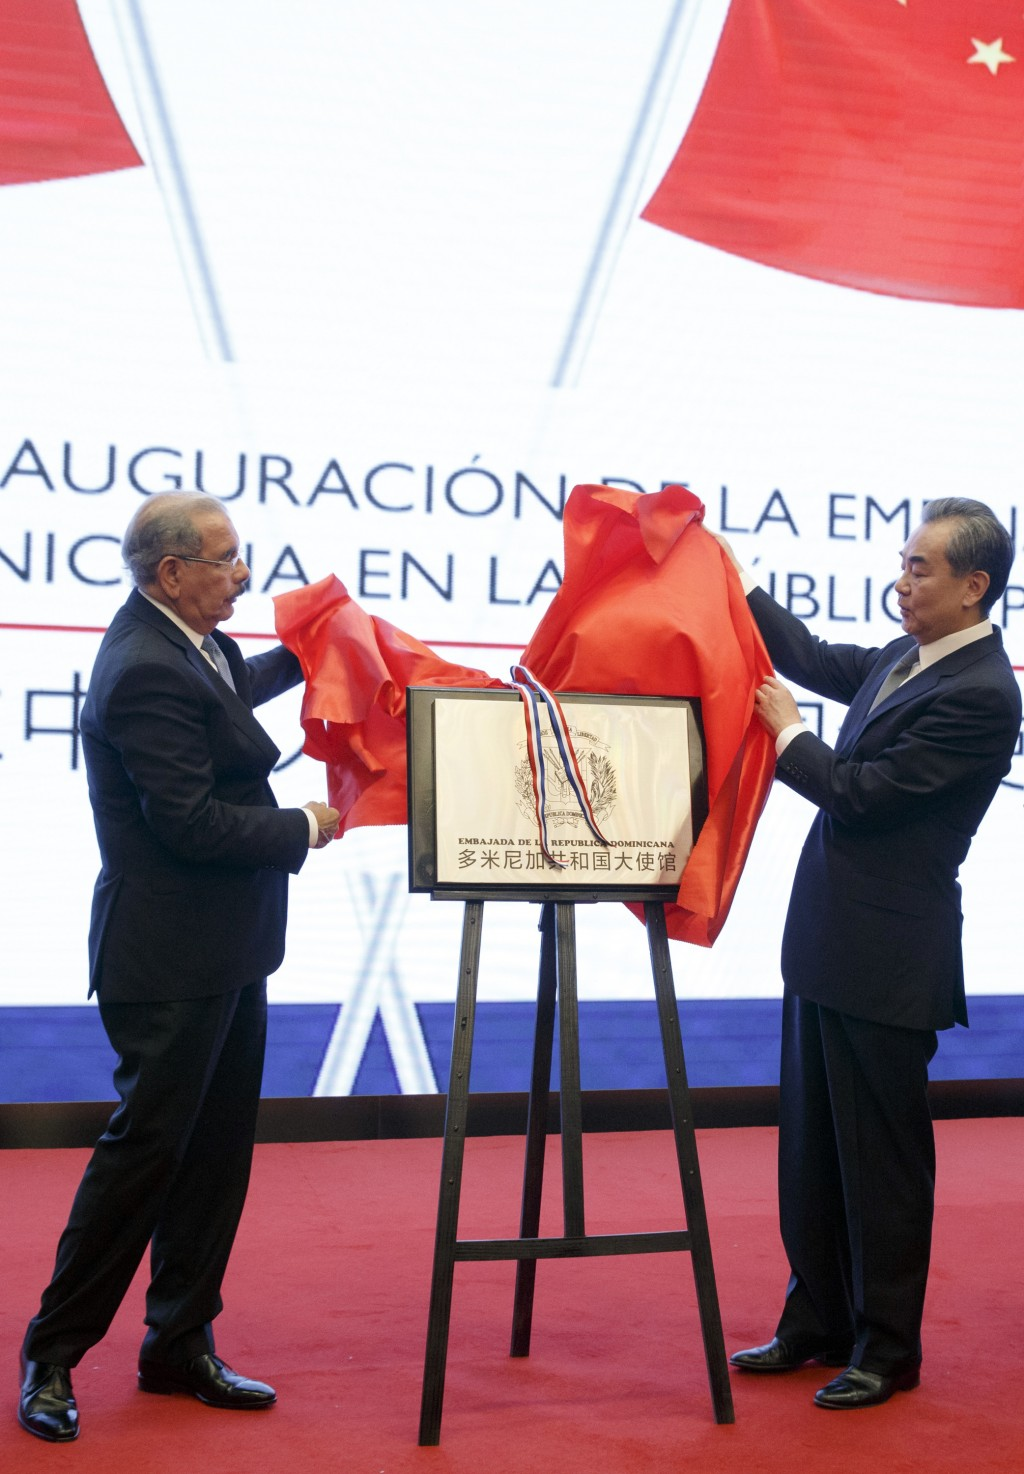 China's Foreign Minister Wang Yi, right, and Dominican Republic's President Danilo Medina attend the opening ceremony of Dominican Republic embassy in